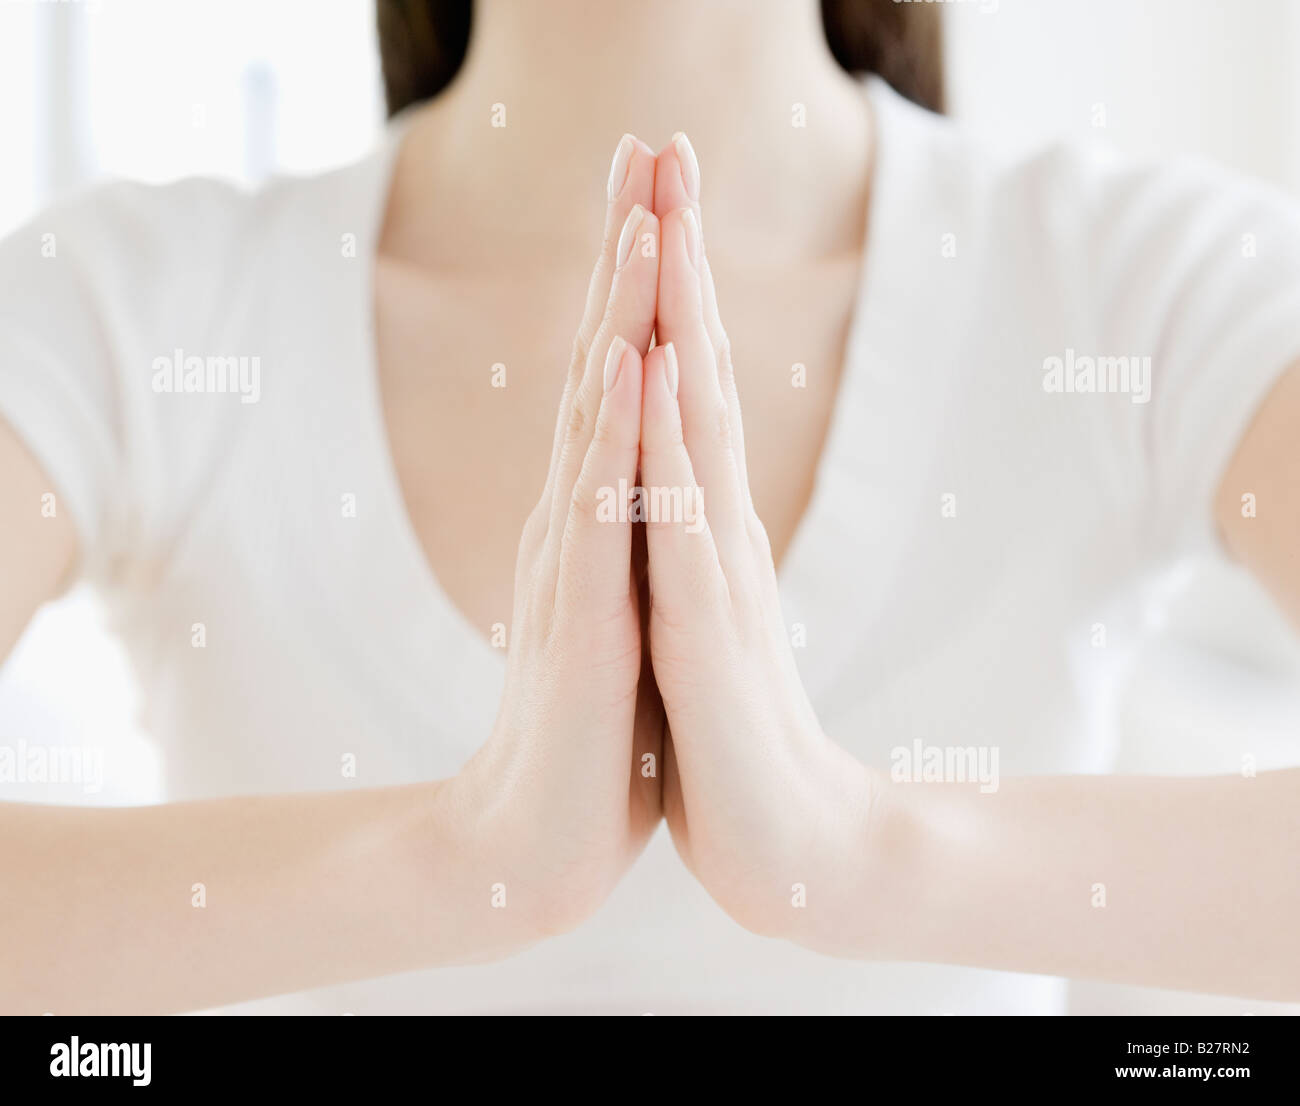 Close up of woman's hands with palms pressed together - Stock Image